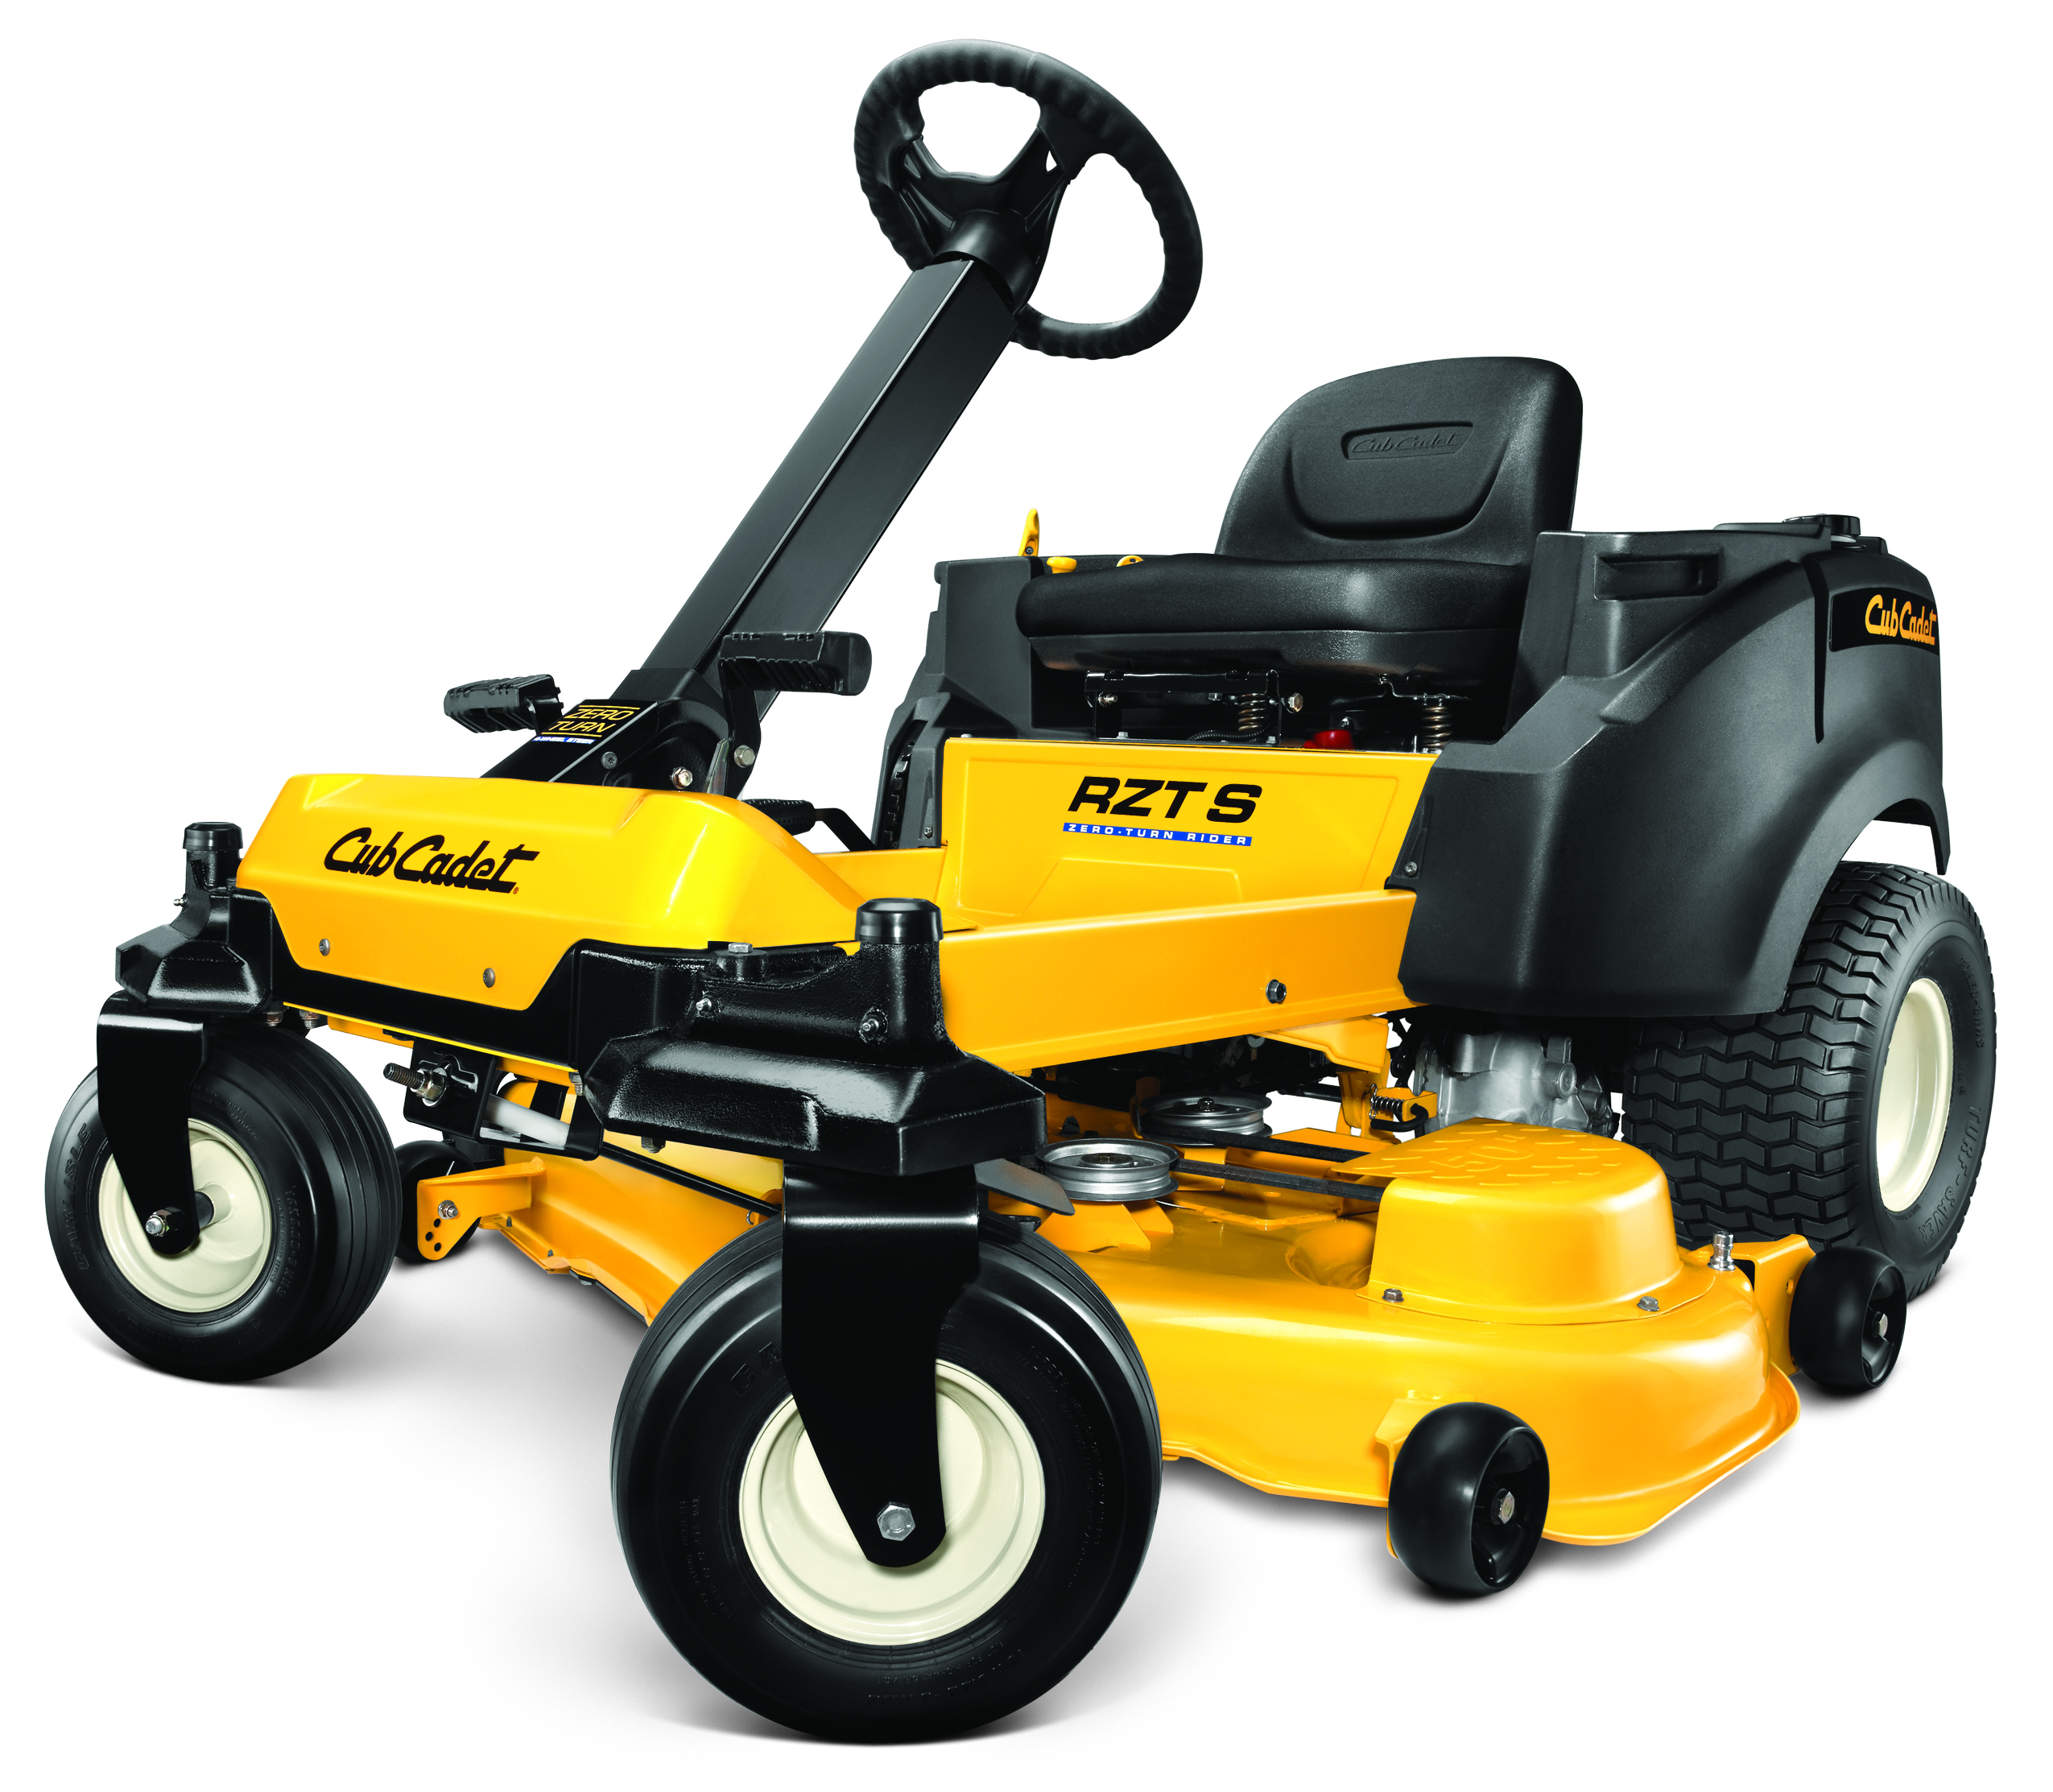 Cub Cadet 174 Offers Homeowners The Smartest Zero Turn Riders